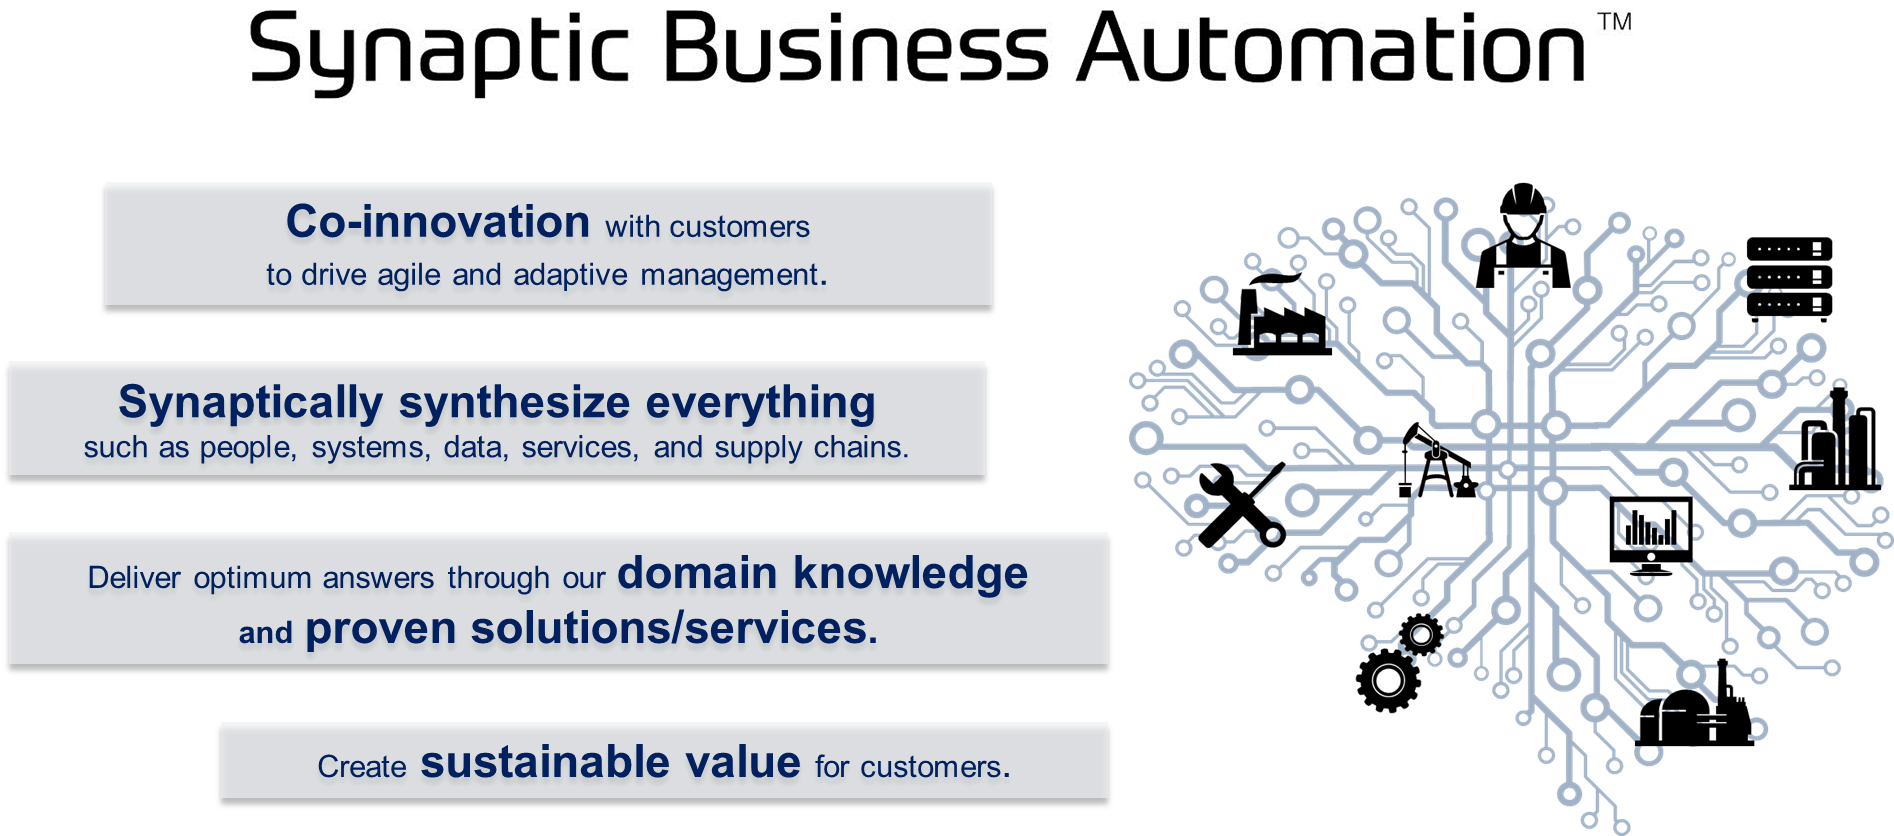 Synaptic business automation yokogawa electric corporation breaking it down synaptic business automation is the combination of two key elements synaptic and business automation fandeluxe Images